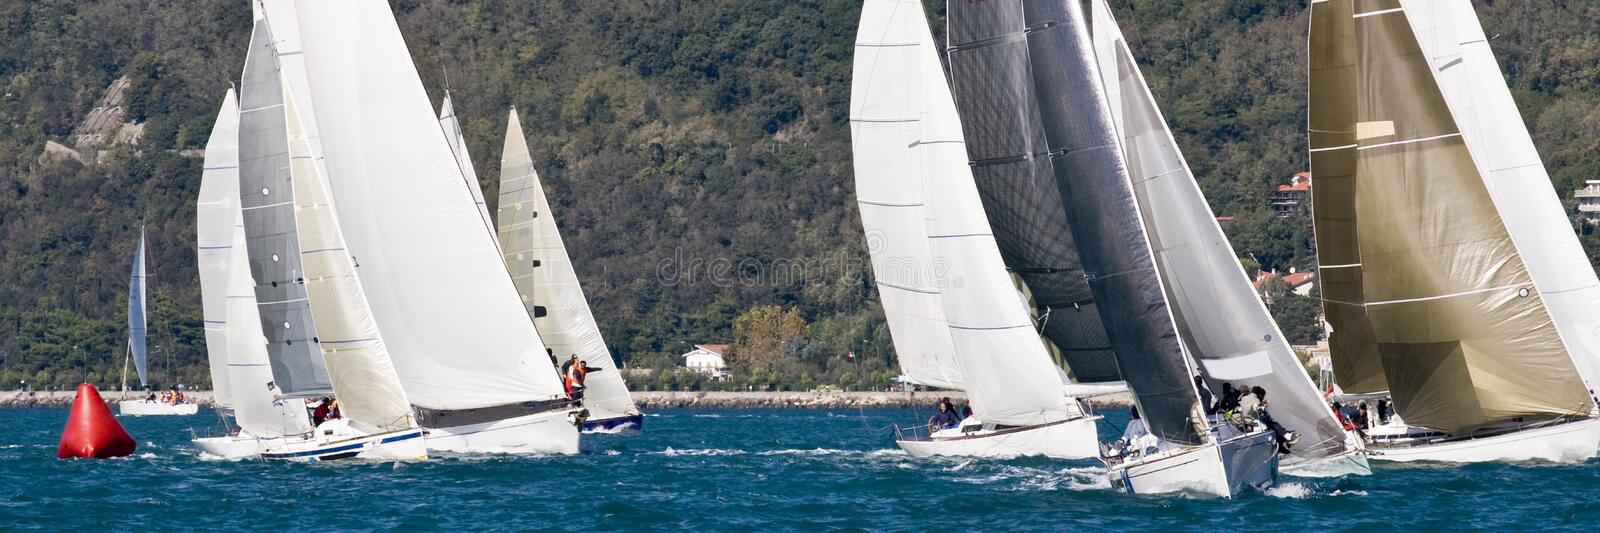 Sailboat Racing stock image